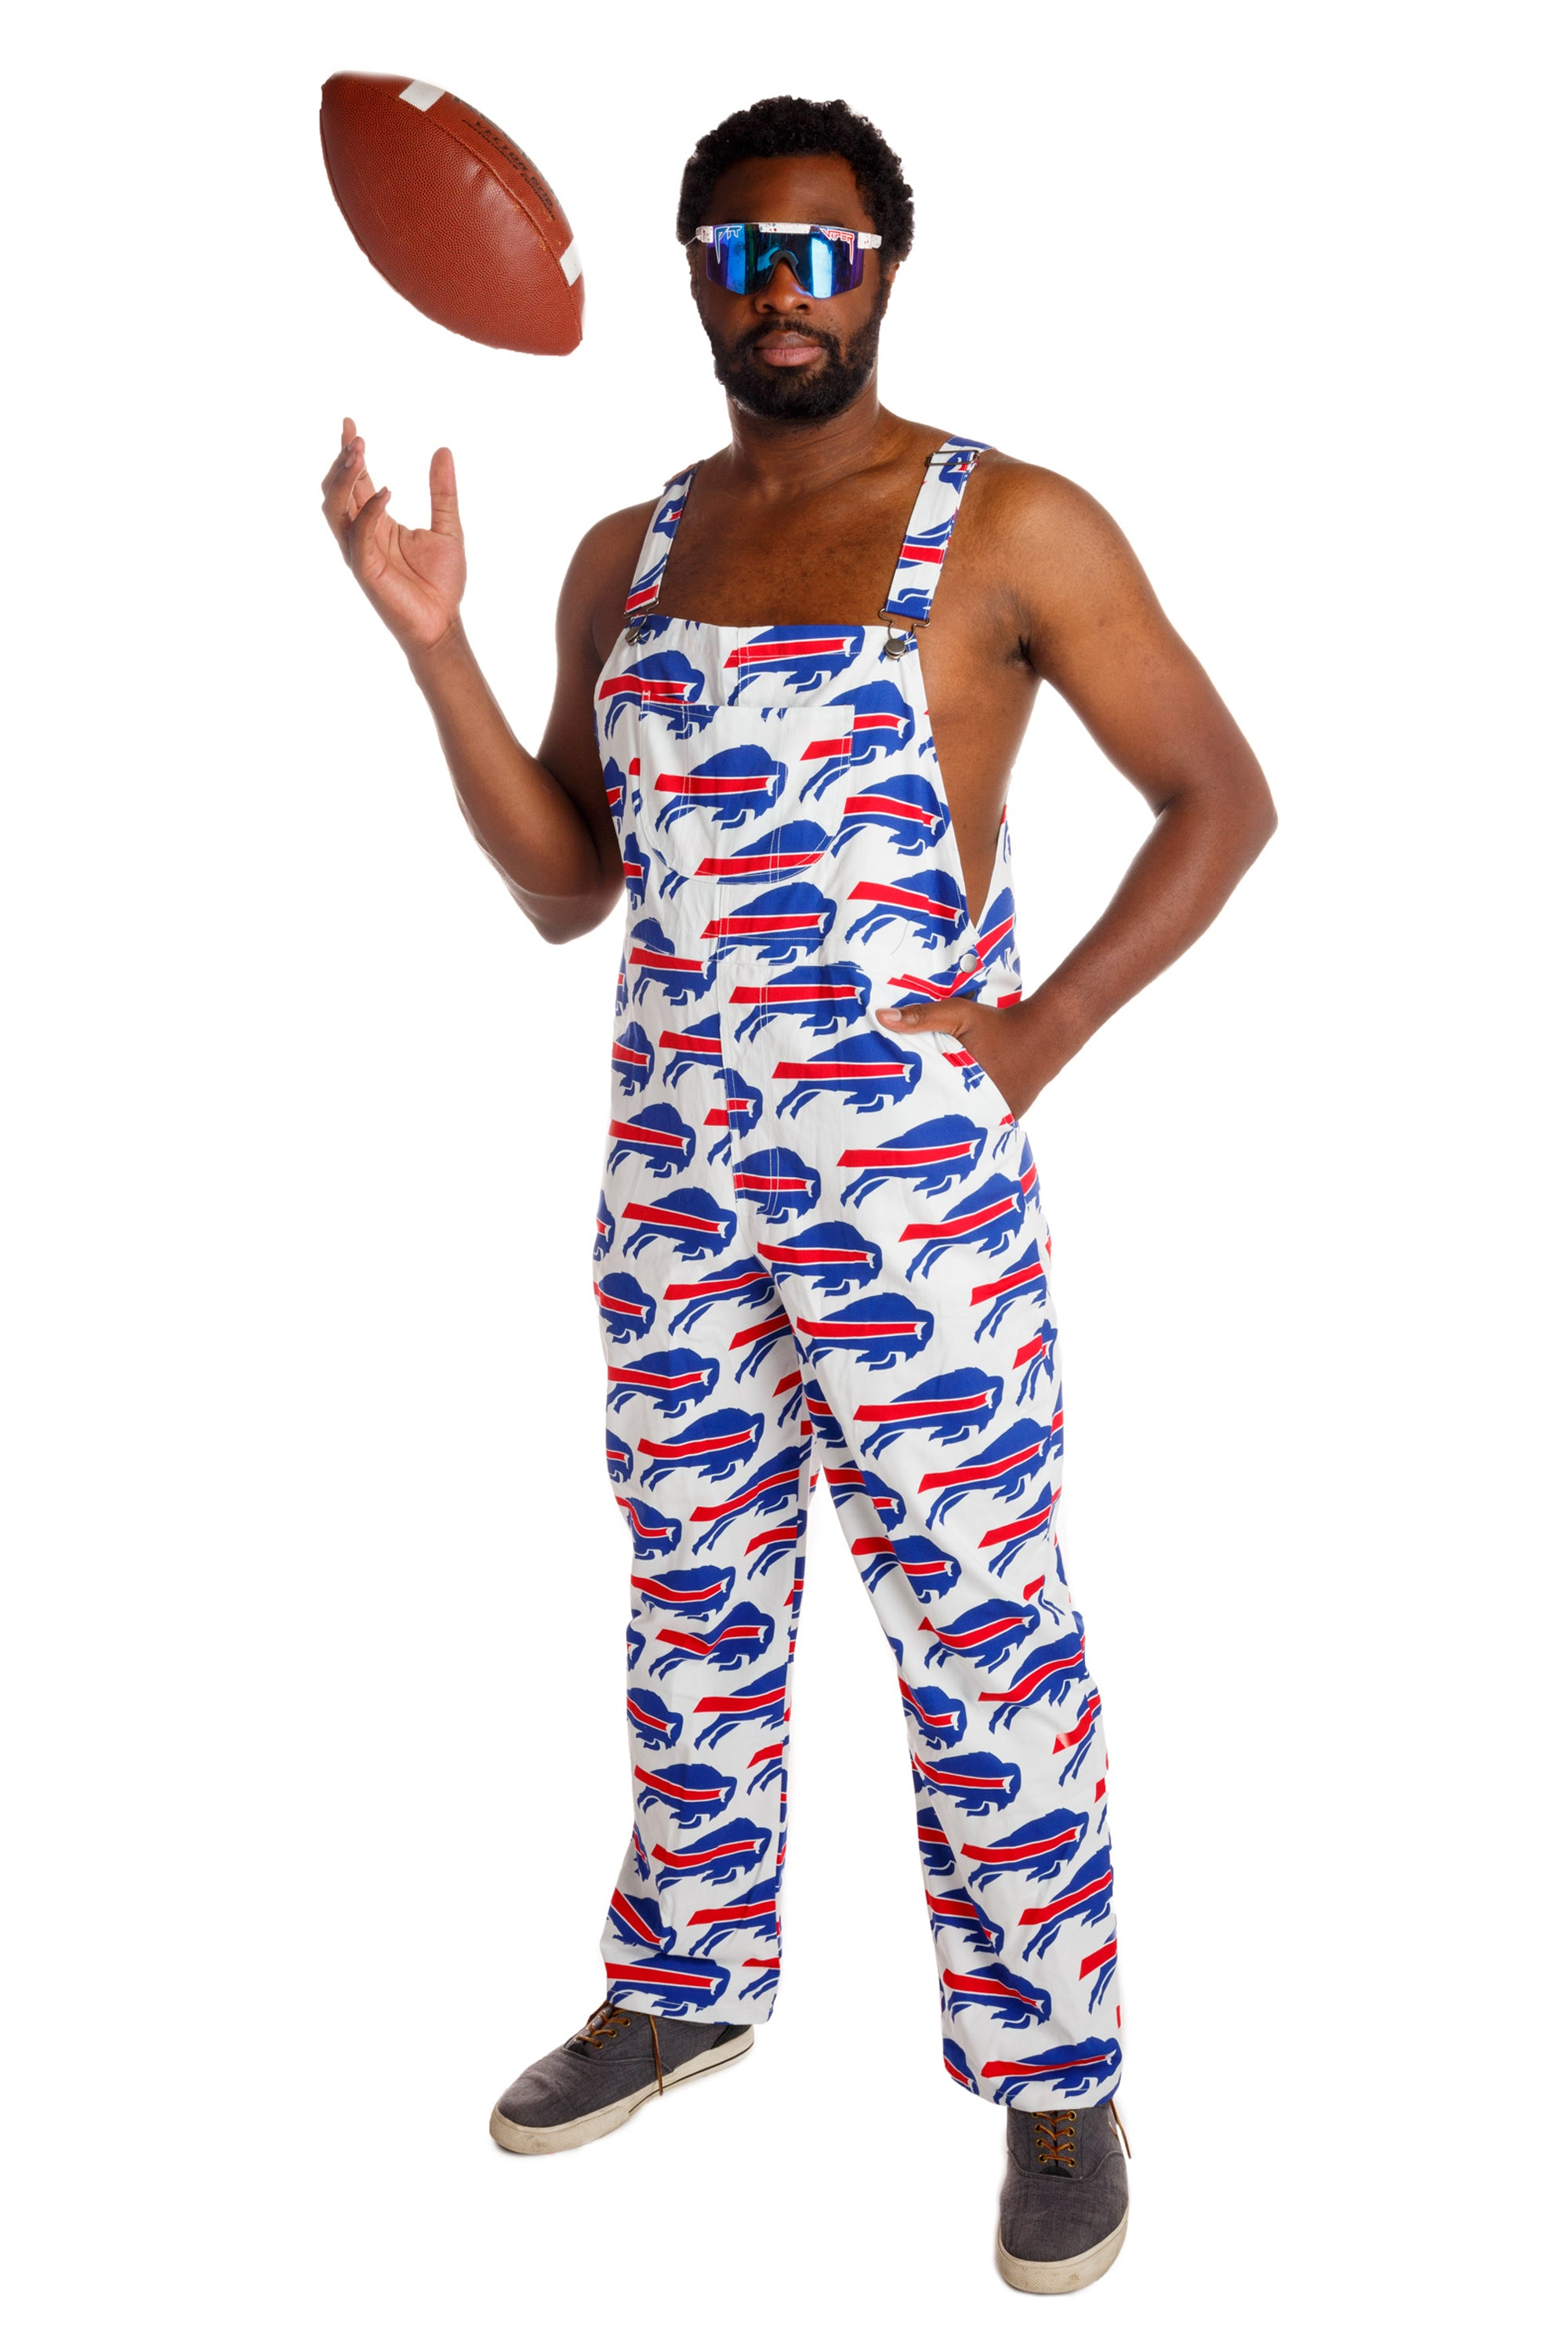 promo code b5a39 c3fe5 The Buffalo Bills | Unisex NFL Overalls